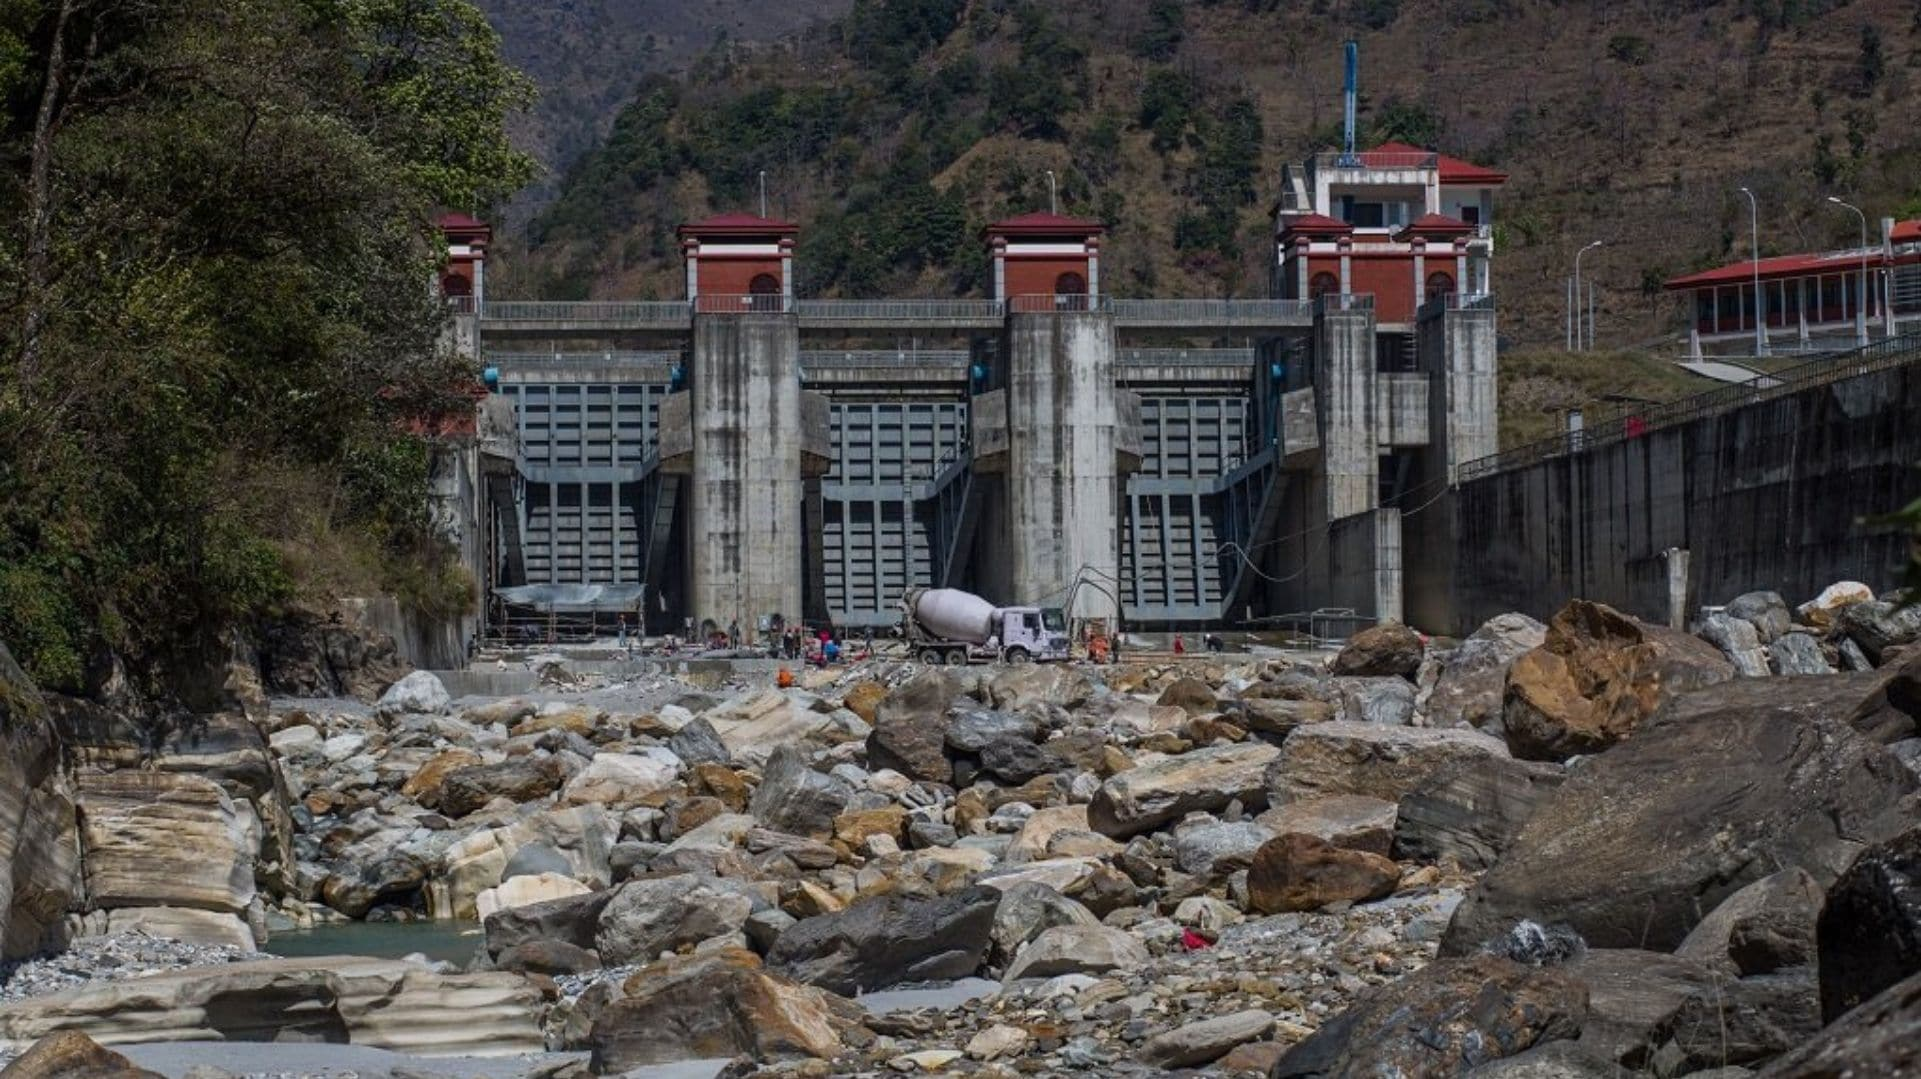 Caught in a series of dams and hydro projects, is Nepal's Marsyangdi river slowly drying up?